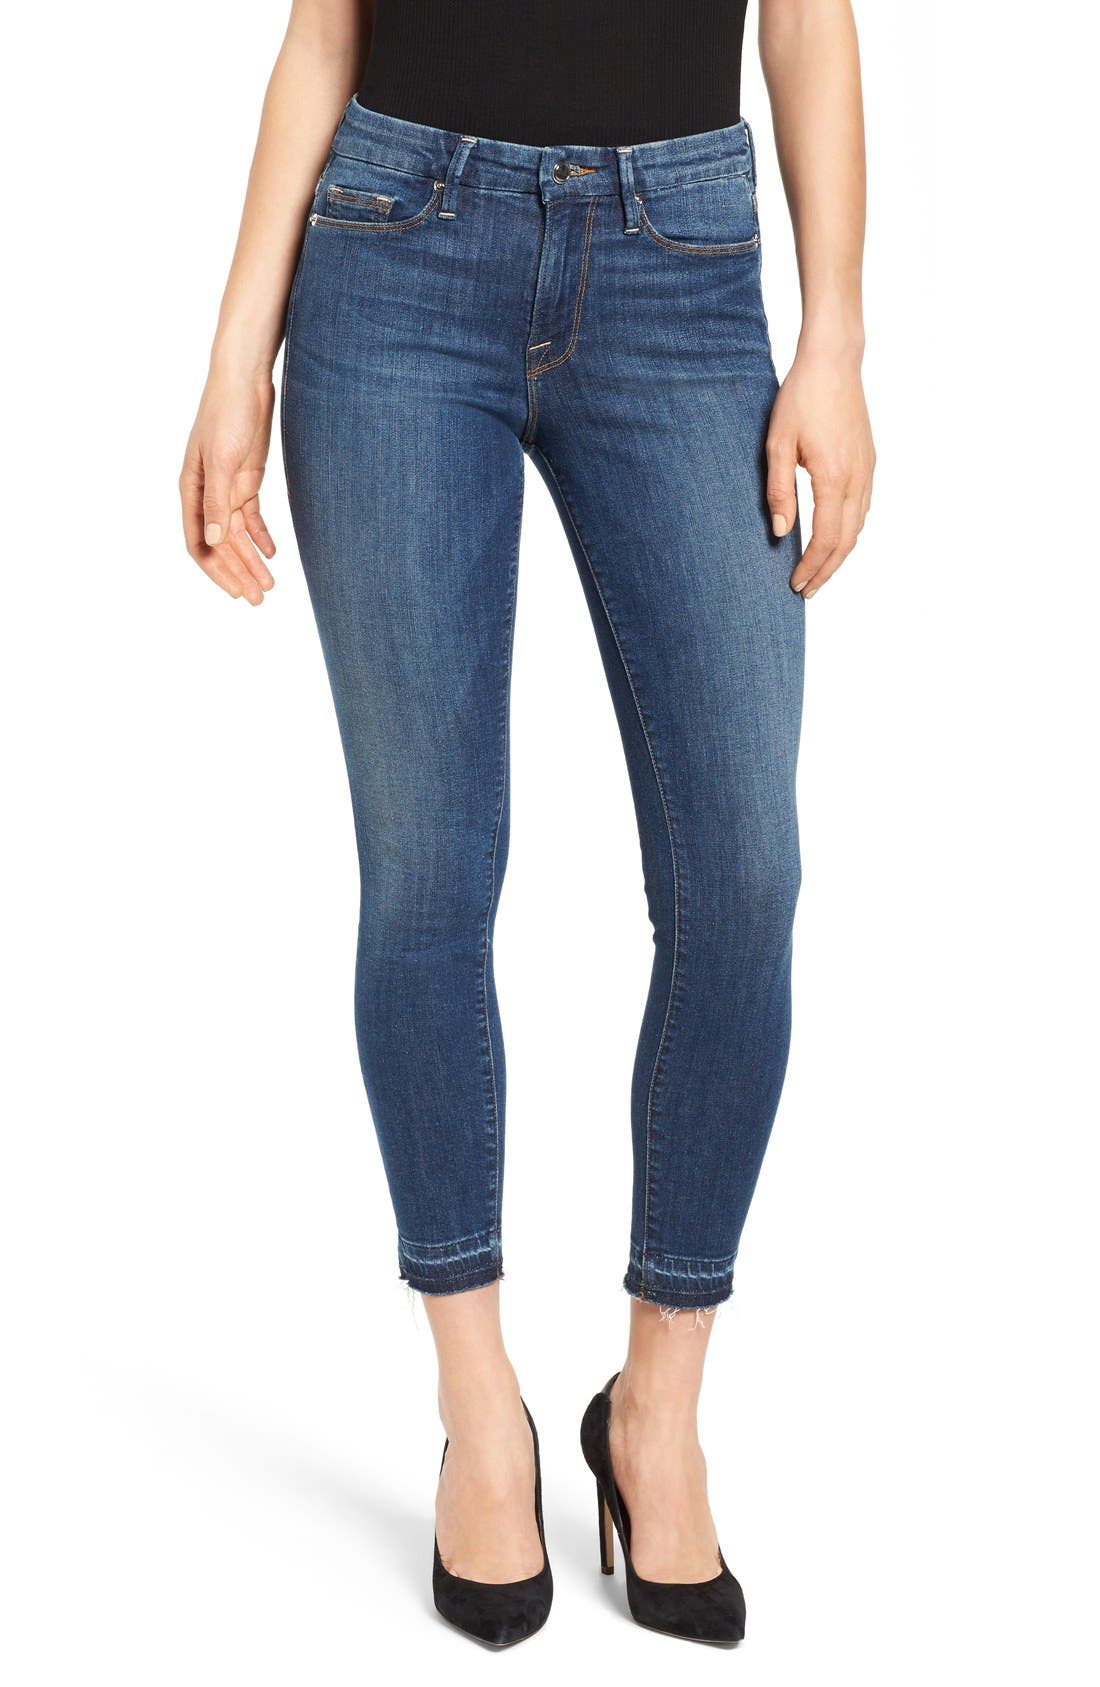 Main Image - Good American Good Legs High Rise Crop Released Hem Skinny Jeans (Blue 009) (Extended Sizes)